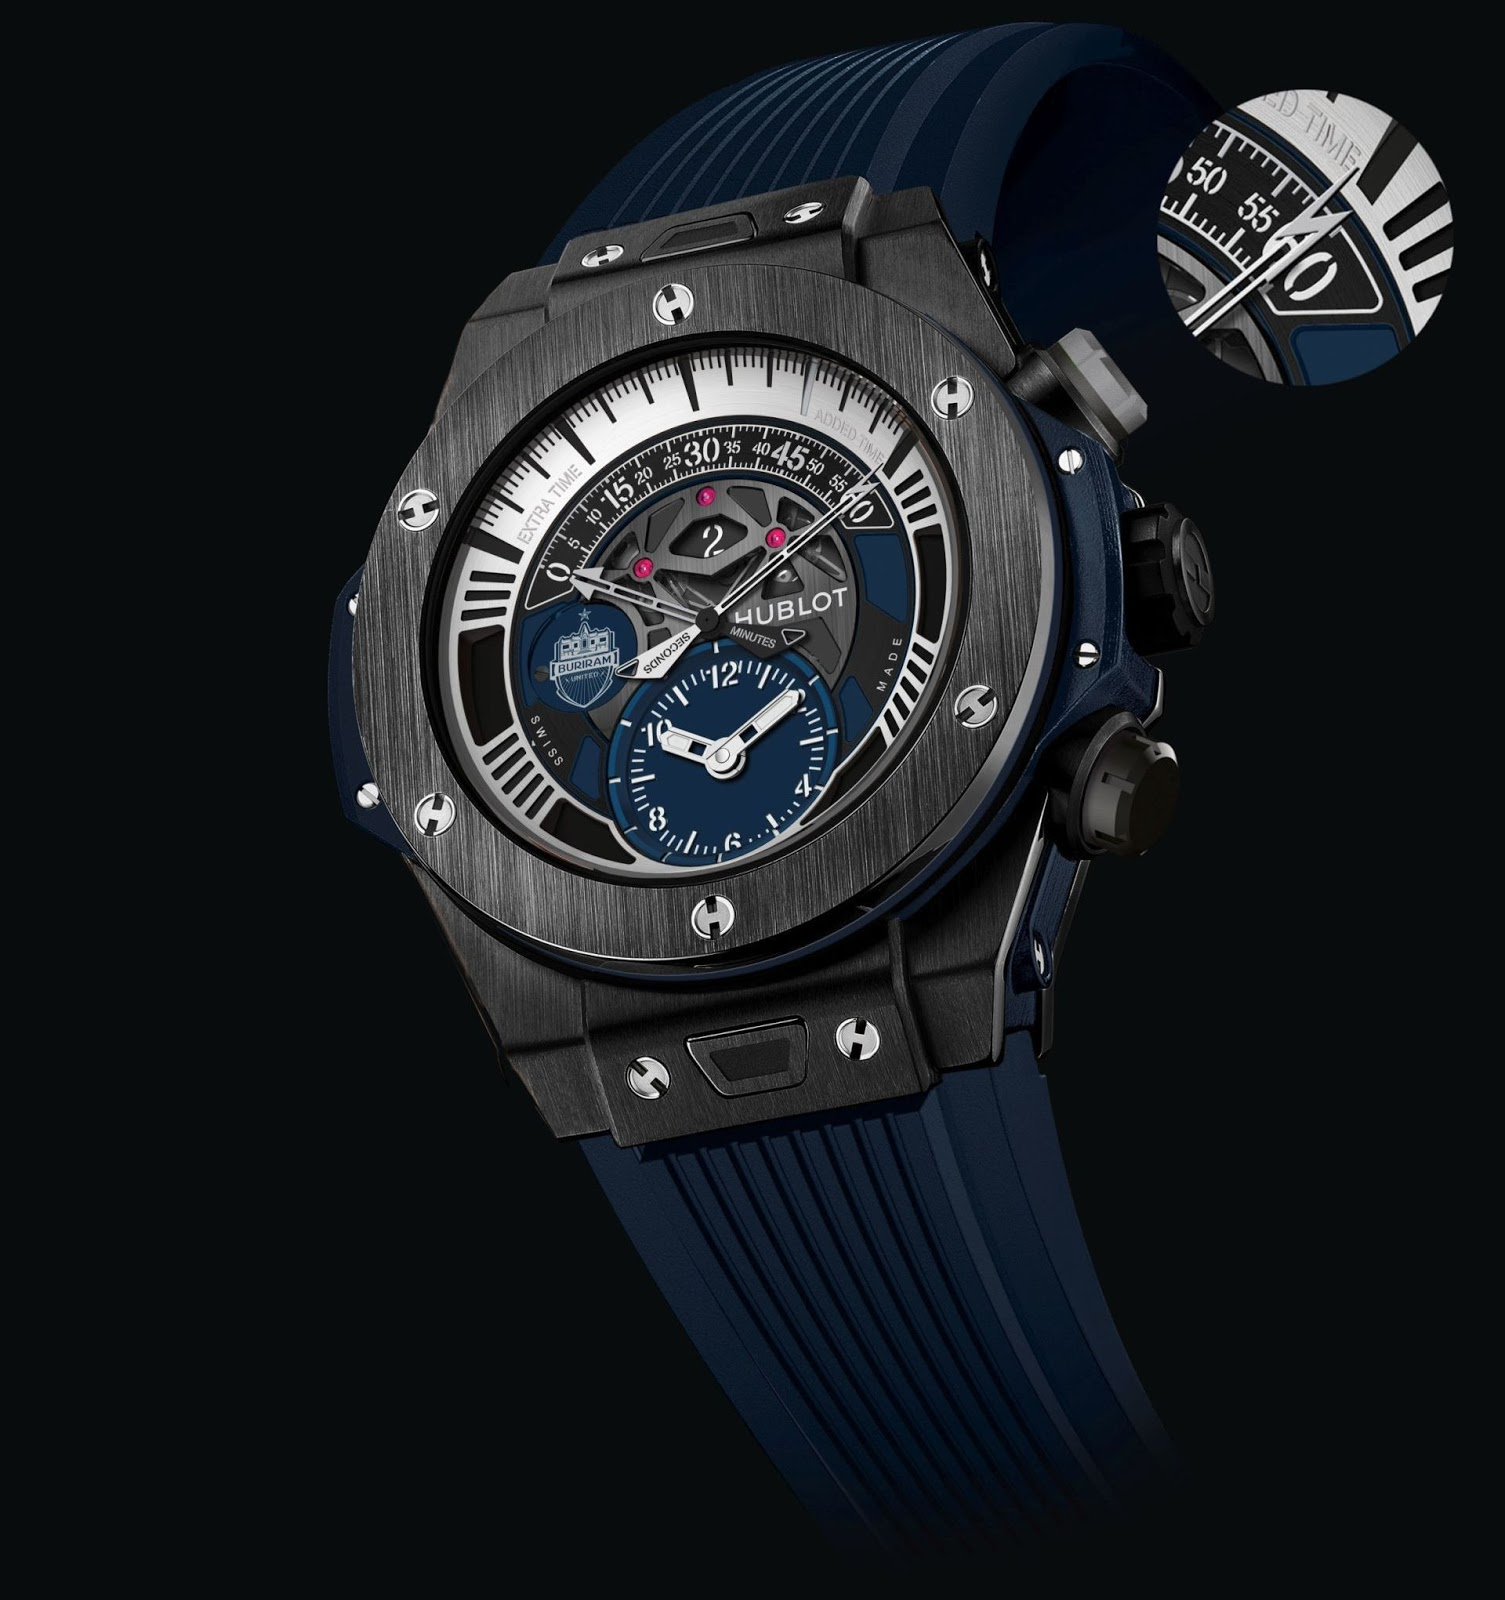 Hublot Uhr Neue Uhr : Hublot Big Bang Unico Chronograph Retrograde